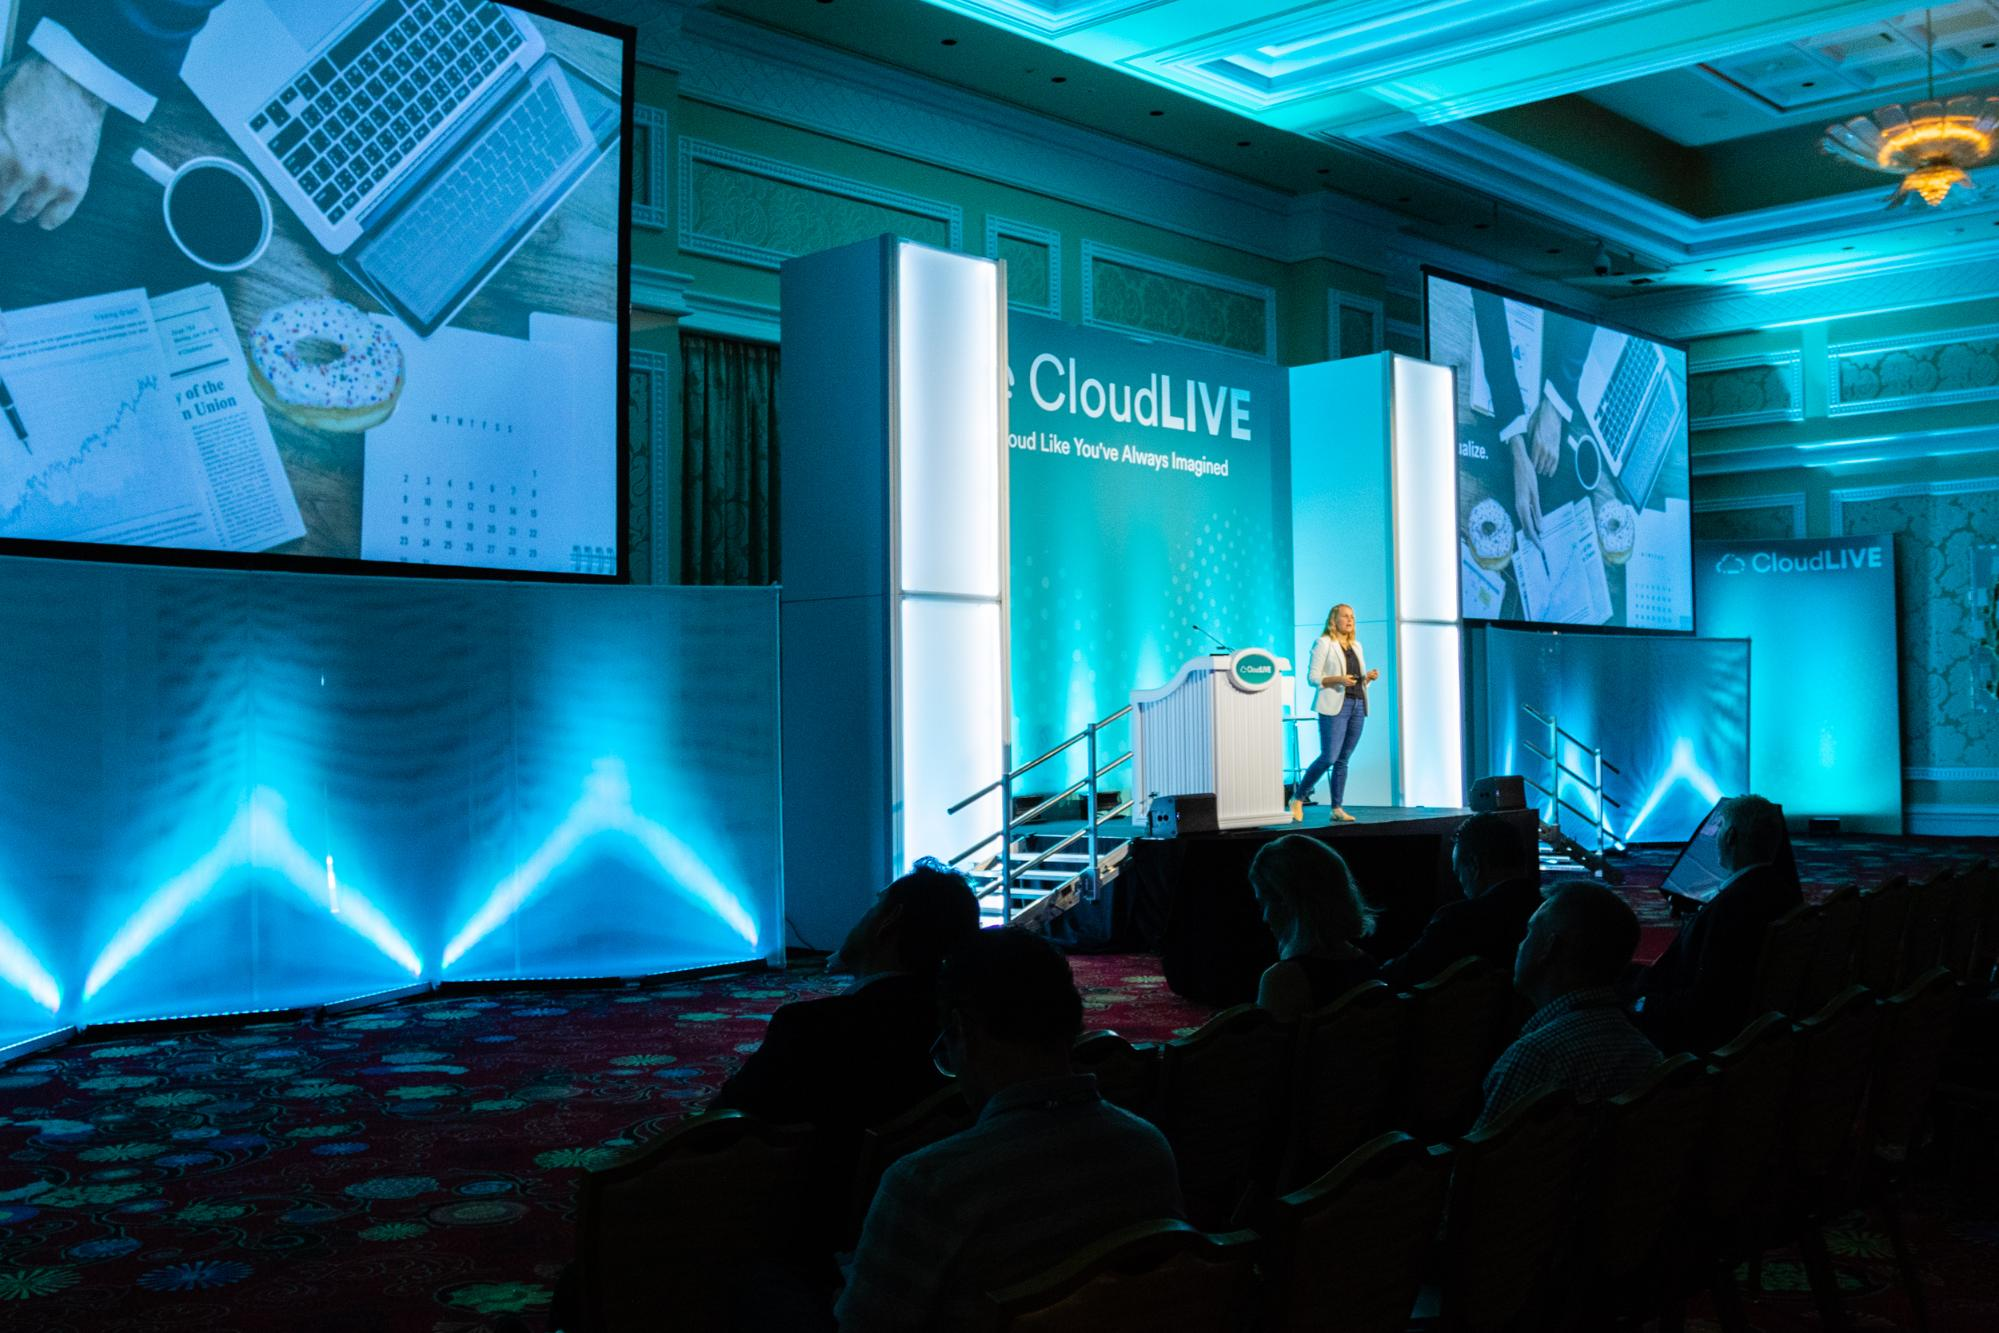 CloudLIVE session hall